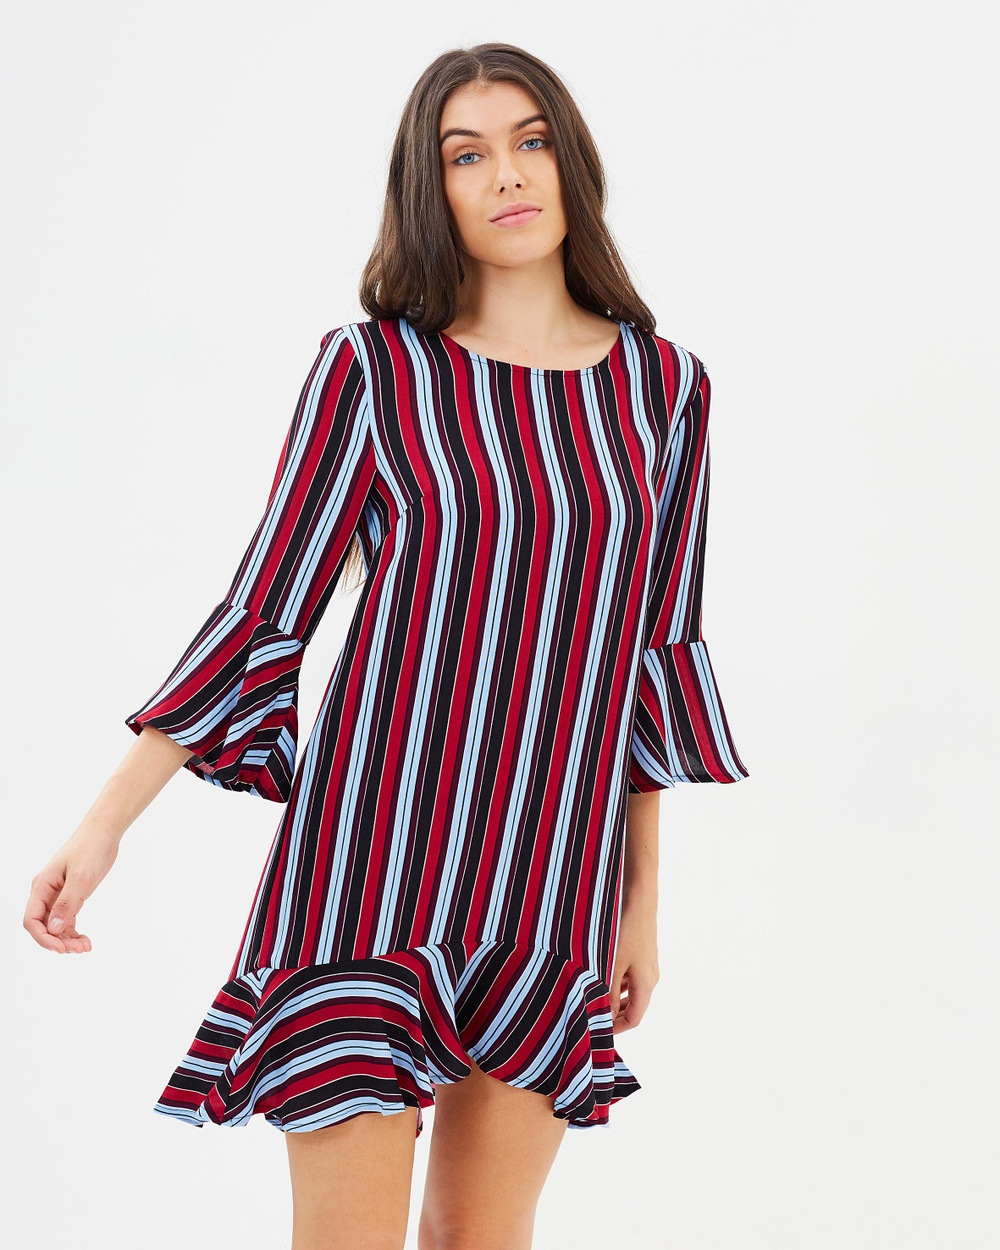 Atmos & Here ICONIC EXCLUSIVE Ella Shift Dress Printed Dresses Multicoloured Stripes ICONIC EXCLUSIVE Ella Shift Dress